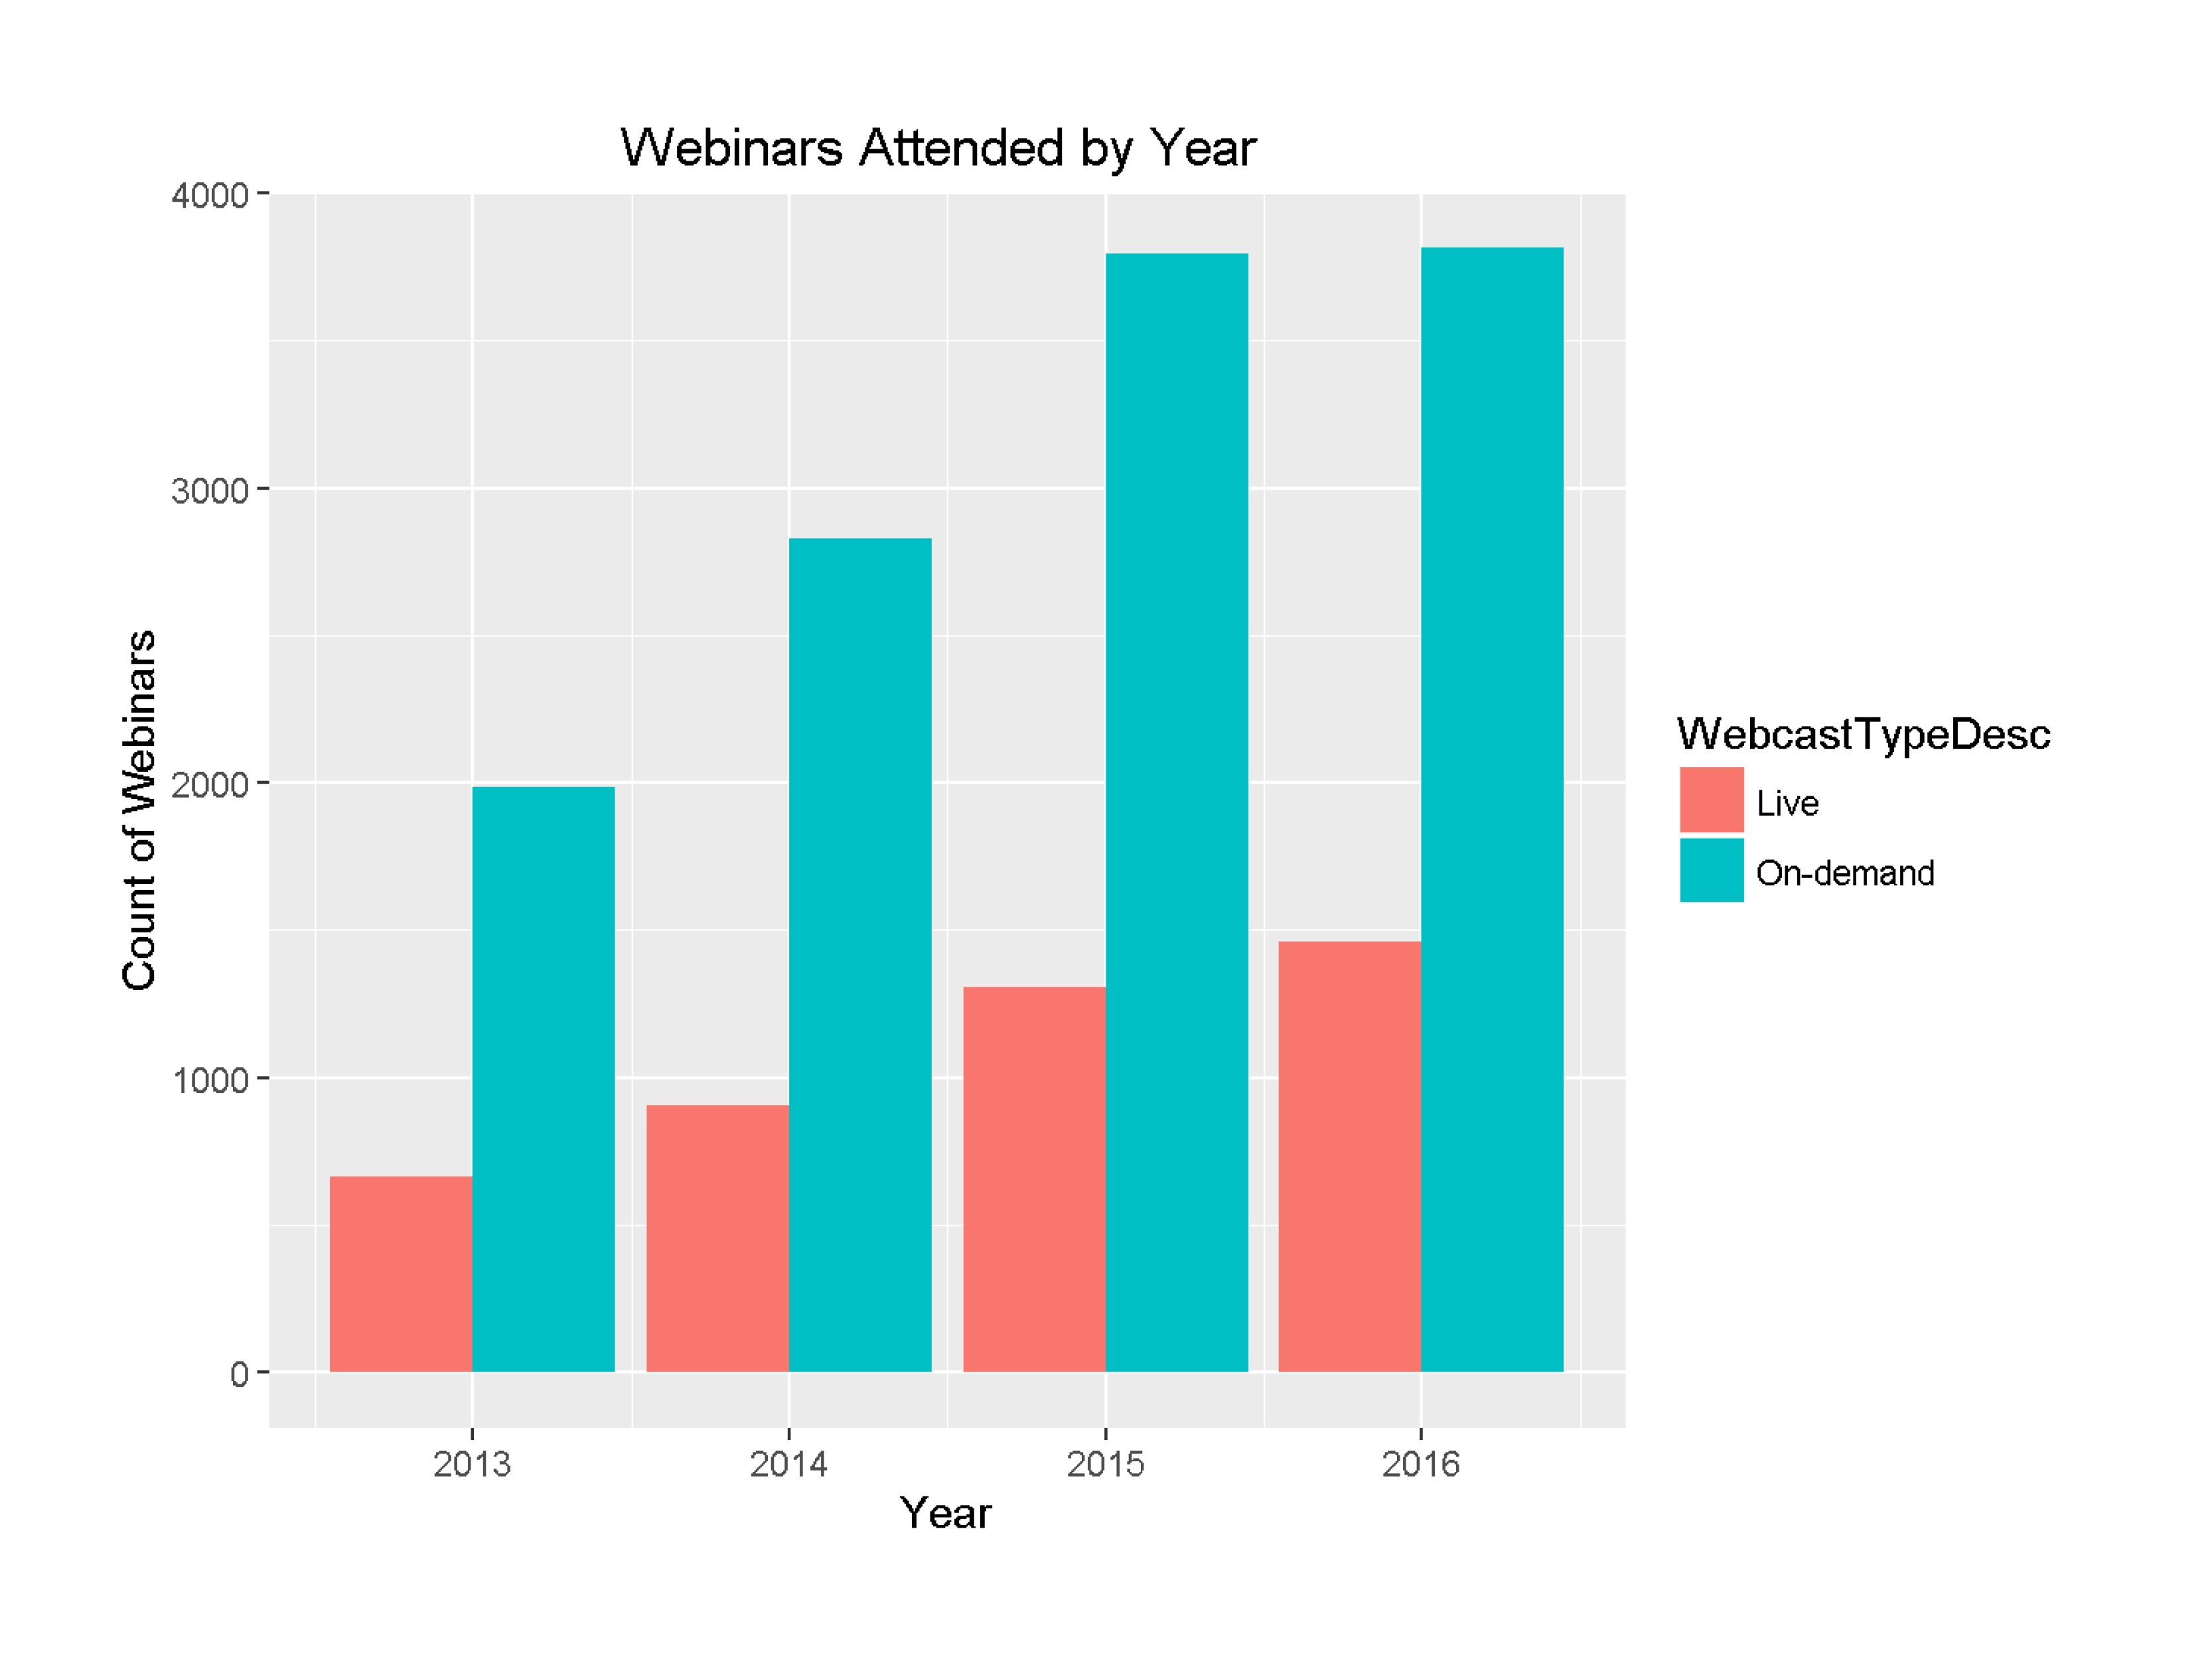 Webinars attended year on year